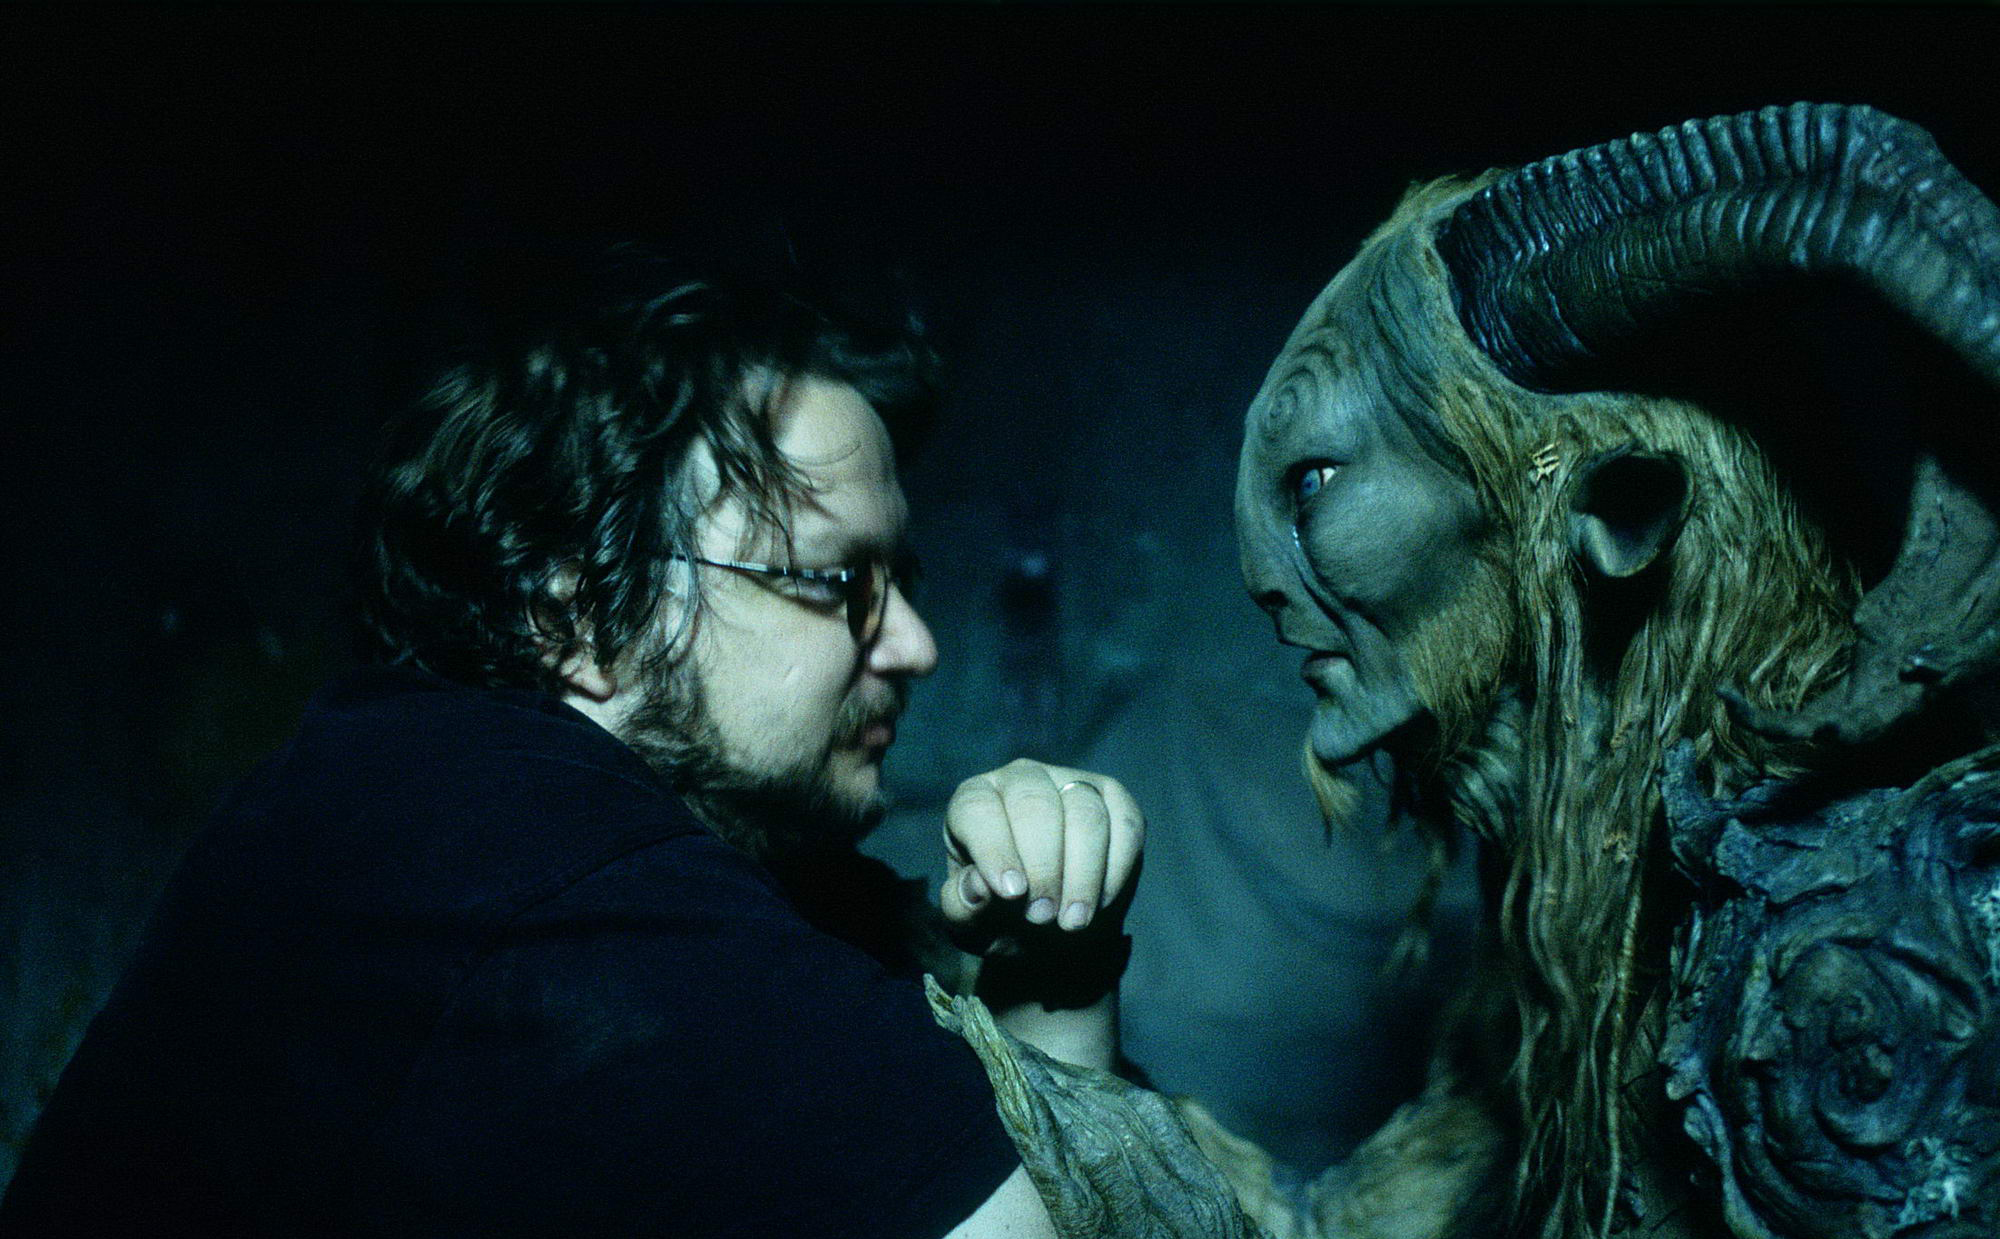 Interview: Guillermo del Toro on Rudo y Cursi, The Hobbit, and More